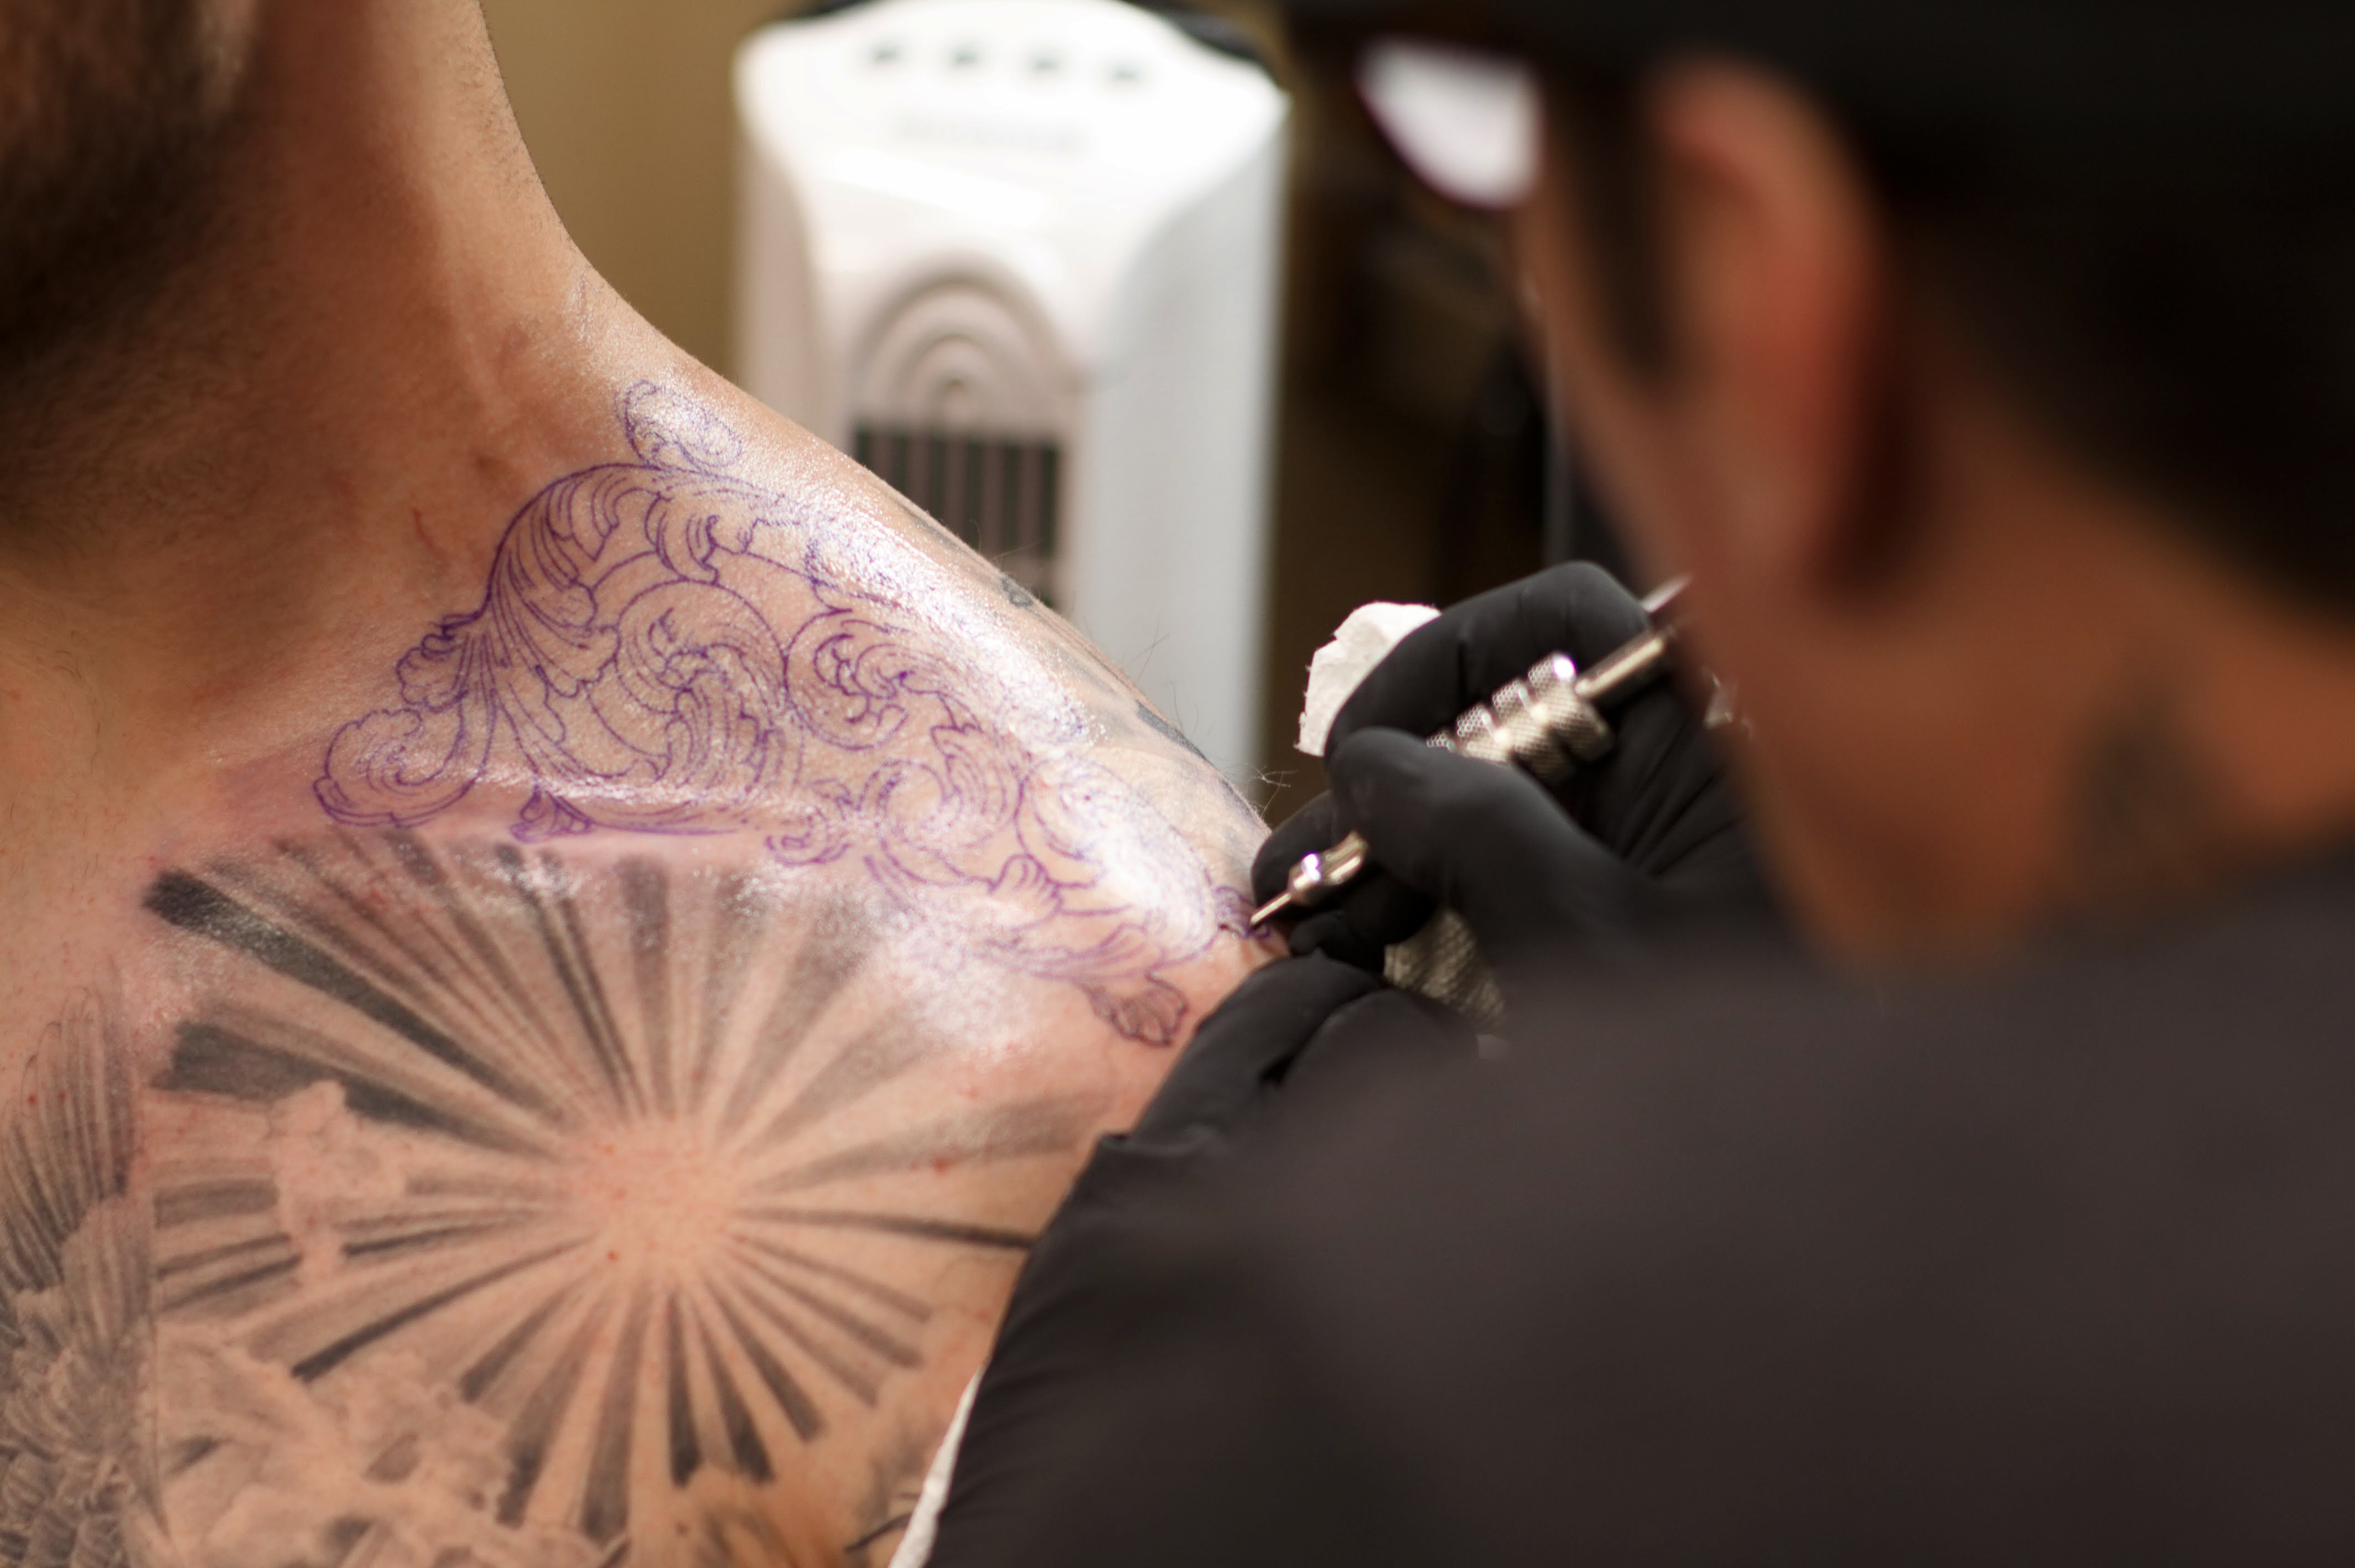 Black And Gray And Brown A Tattoo Style S Chicano Roots Code Switch Npr